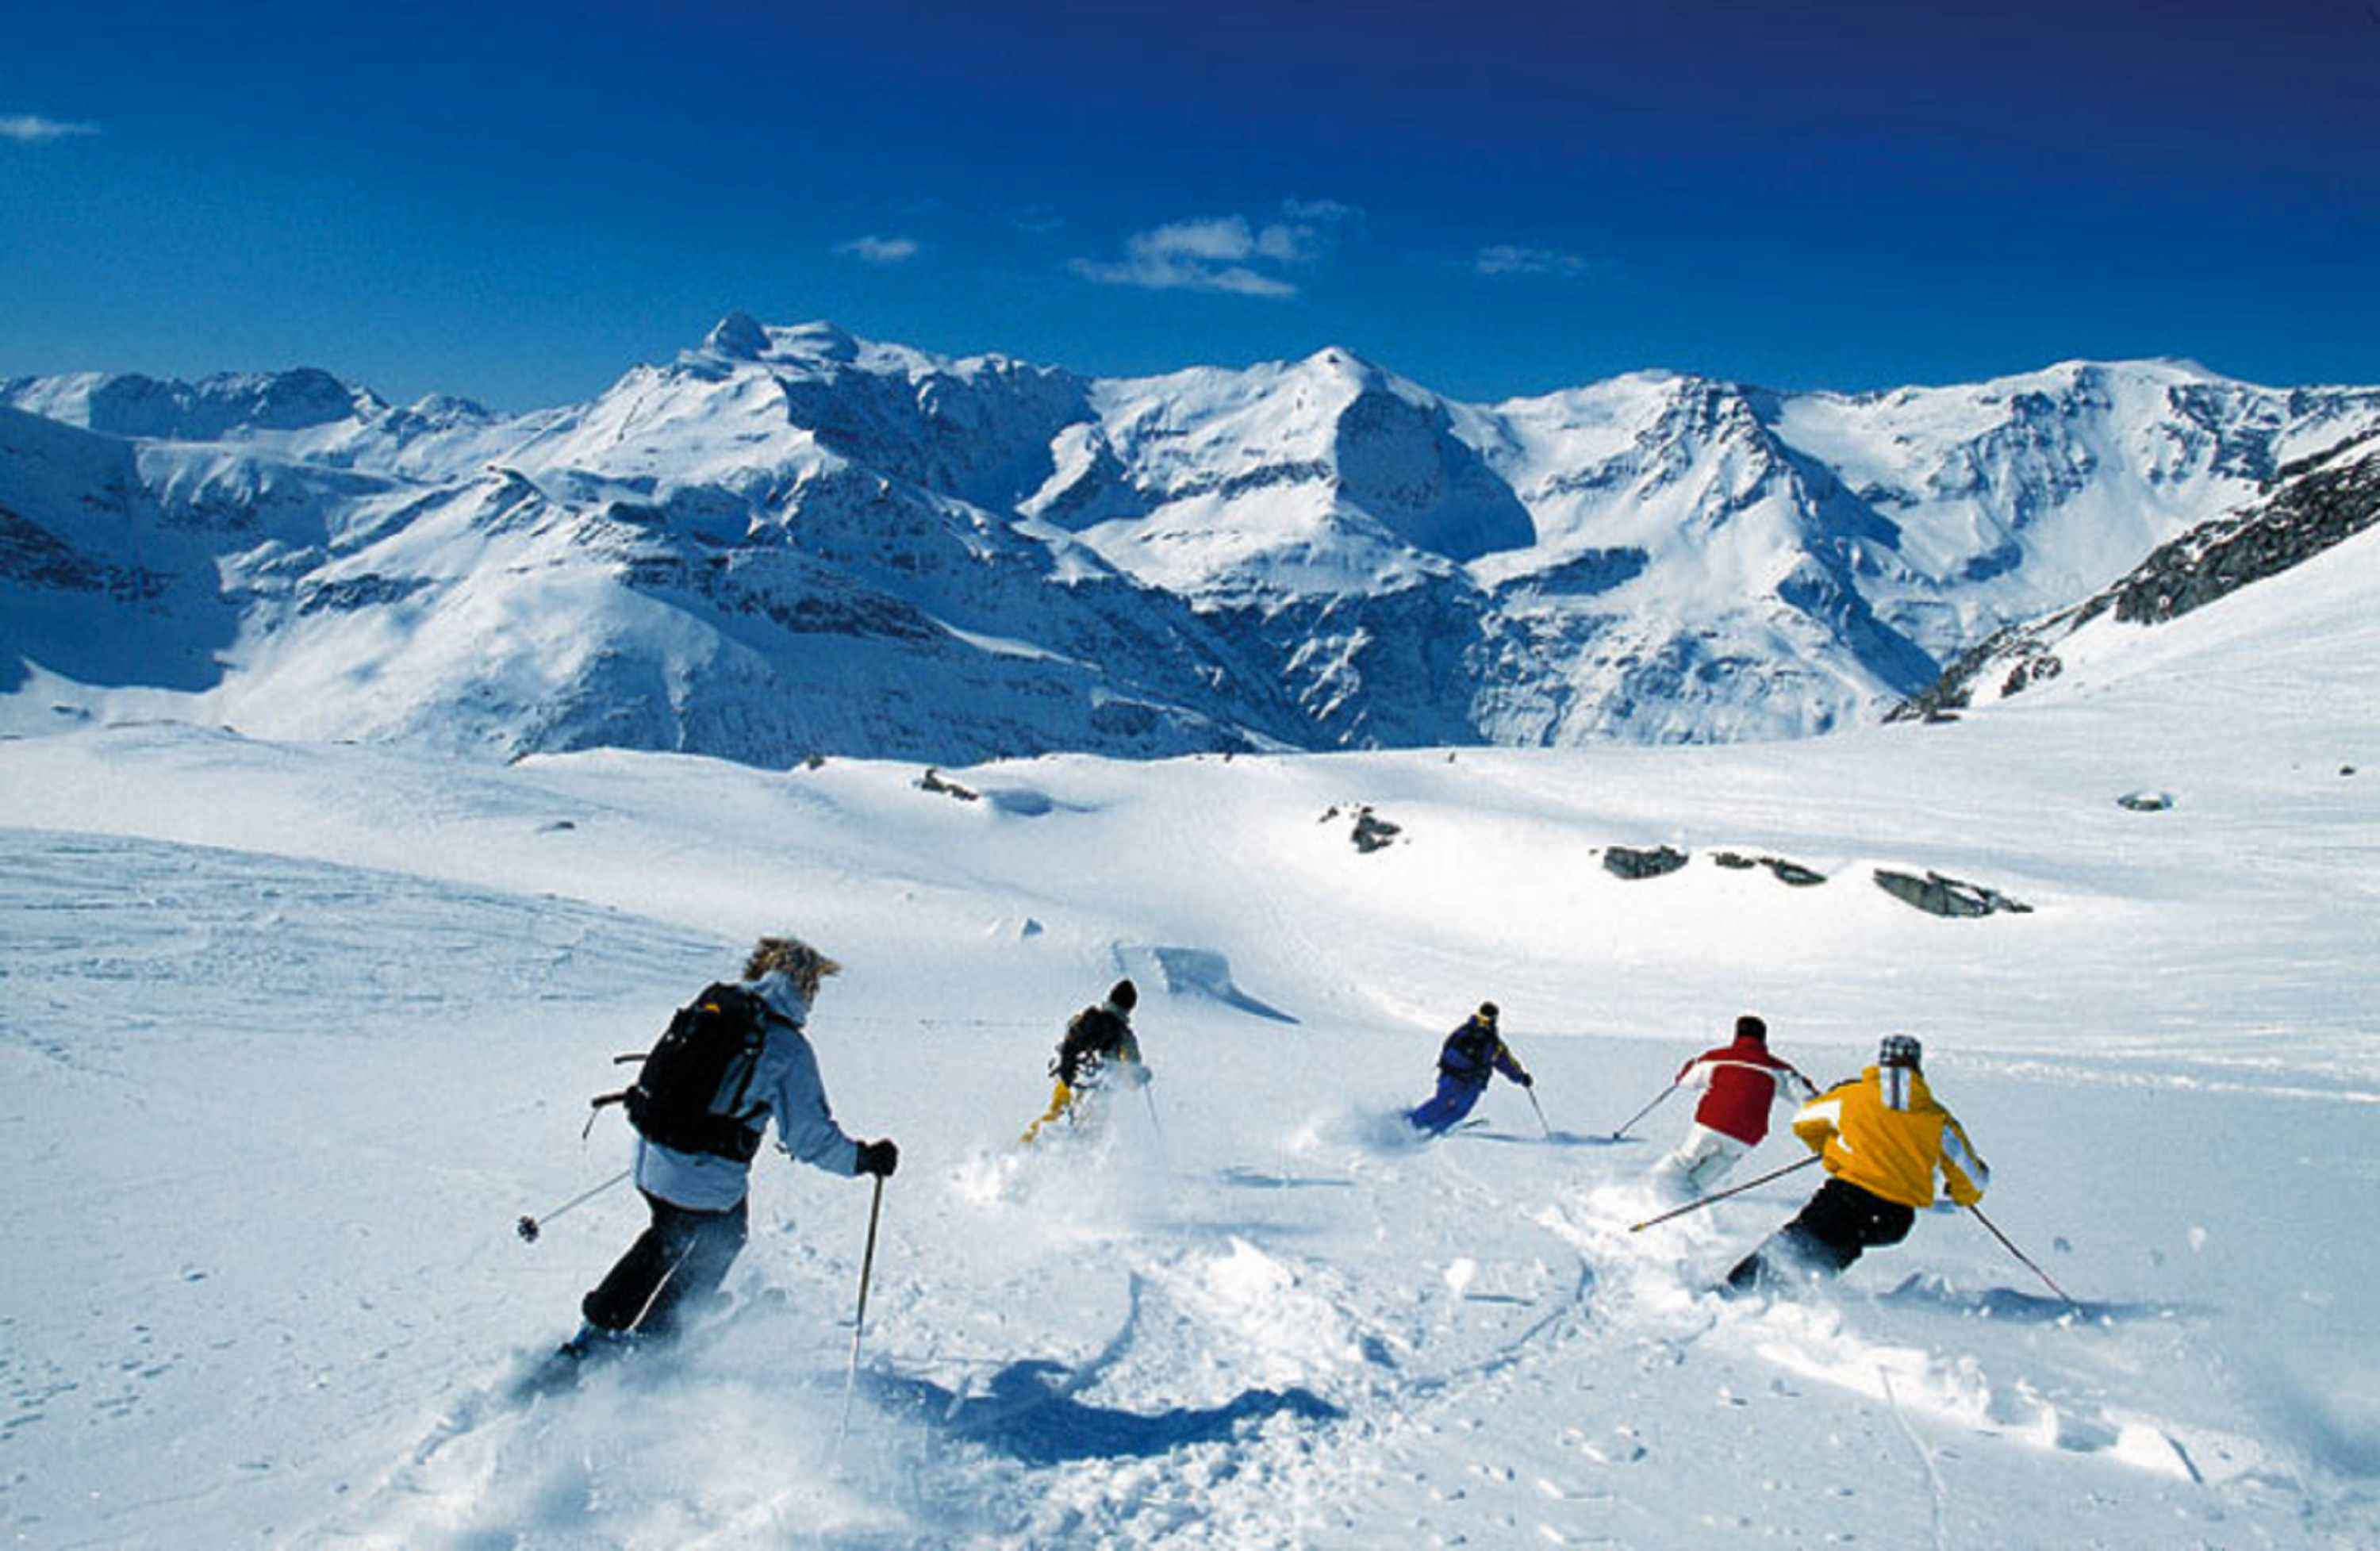 4 ski areas in Gastein Valley